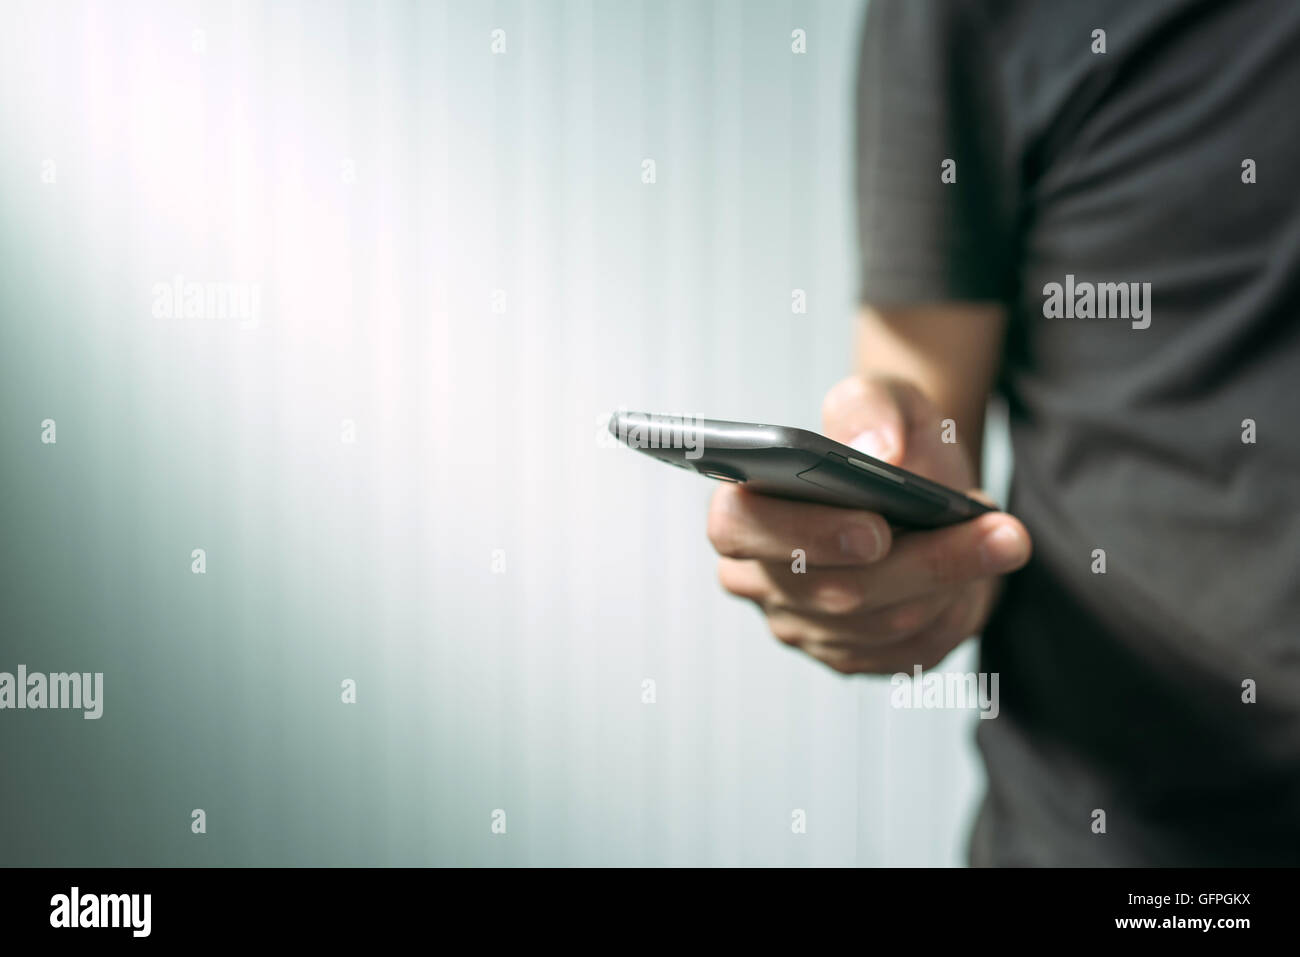 Casual man using smart phone to send text message, male hands holding mobile telephone device, selective focus - Stock Image